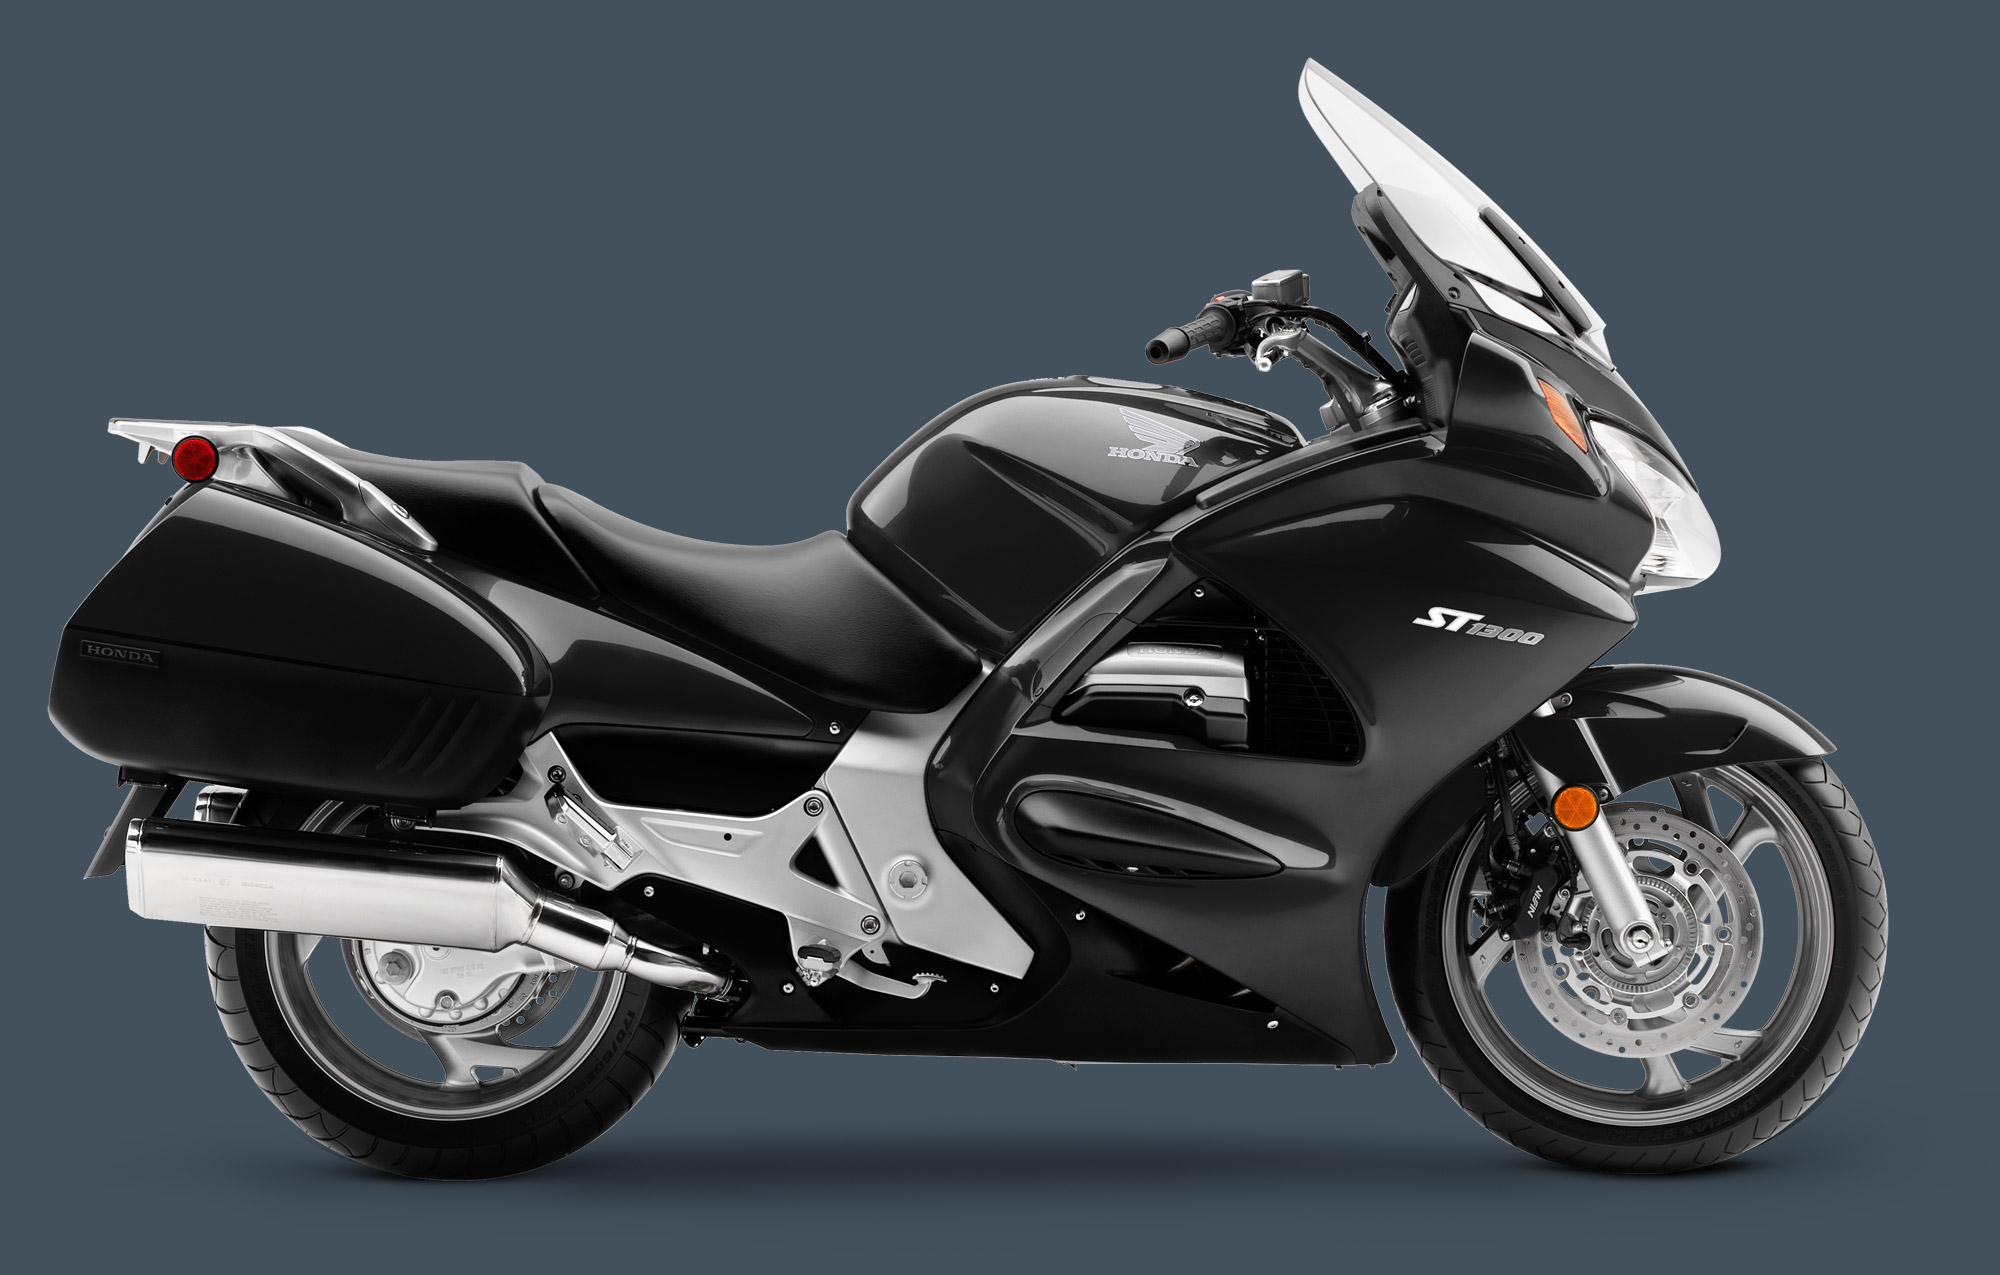 Honda Ctx1300 Based Sport Tourer Rumored To Replace The St1300 Pan European